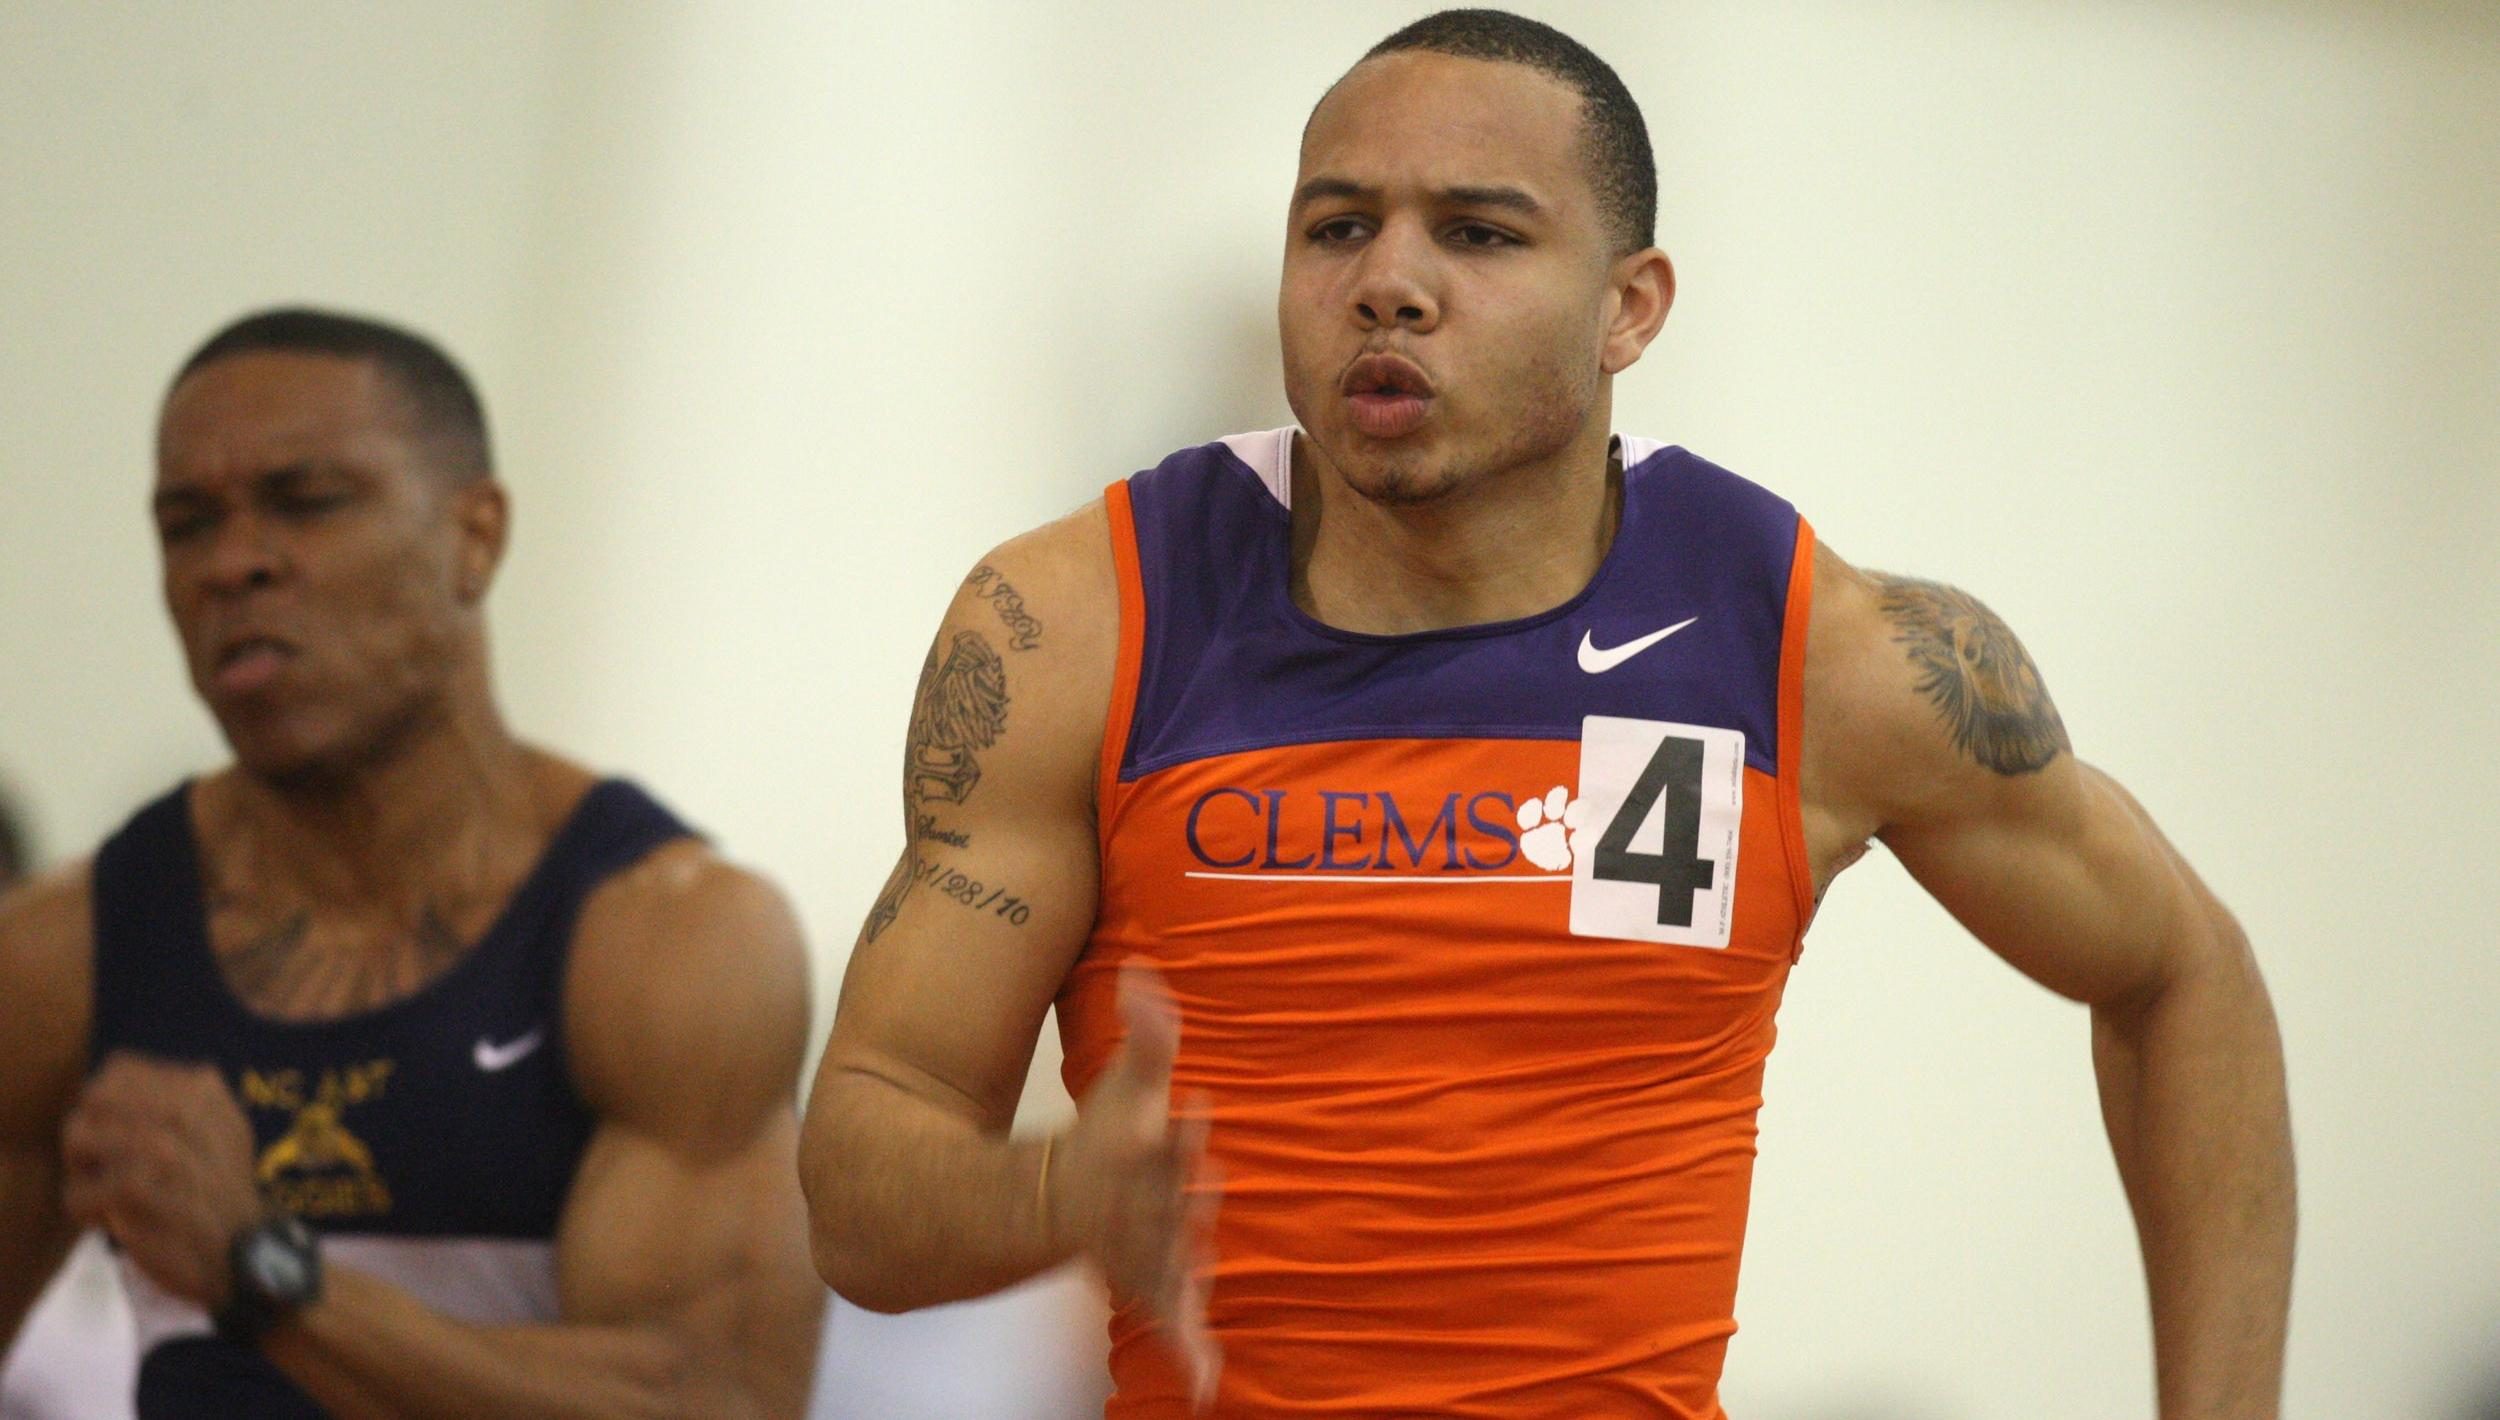 Clemson Track & Field Travels to College Station for Texas A&M Invitational